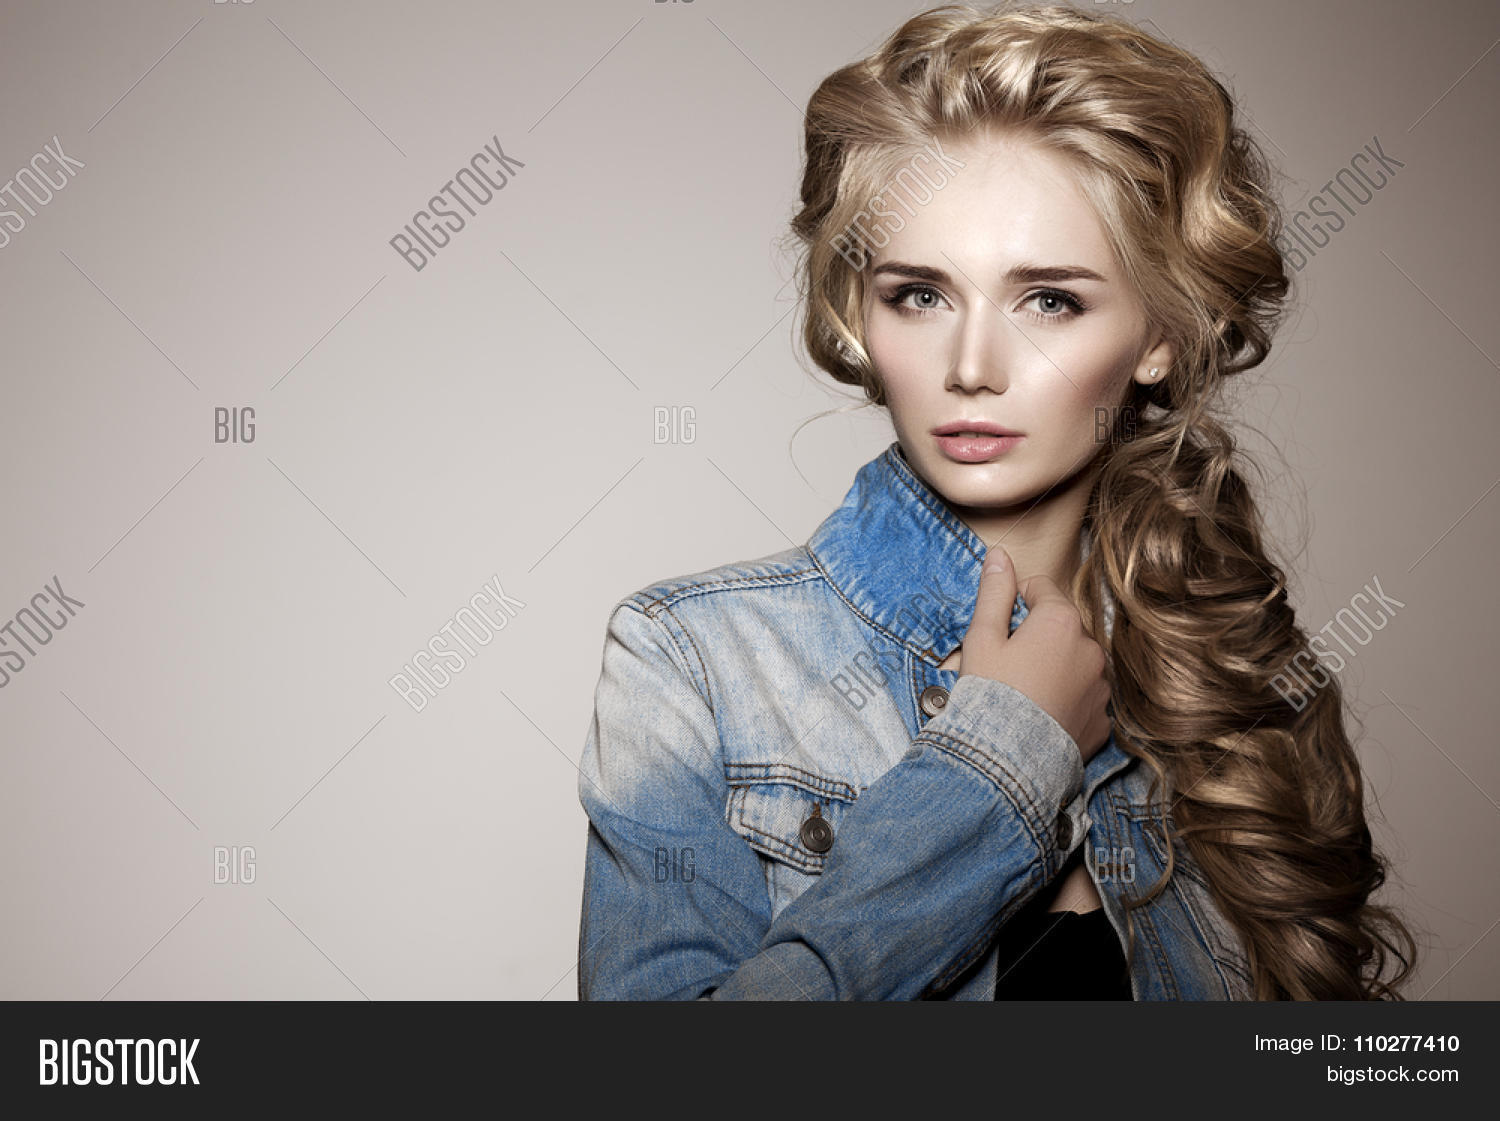 Model Long Braided Image Photo Free Trial Bigstock